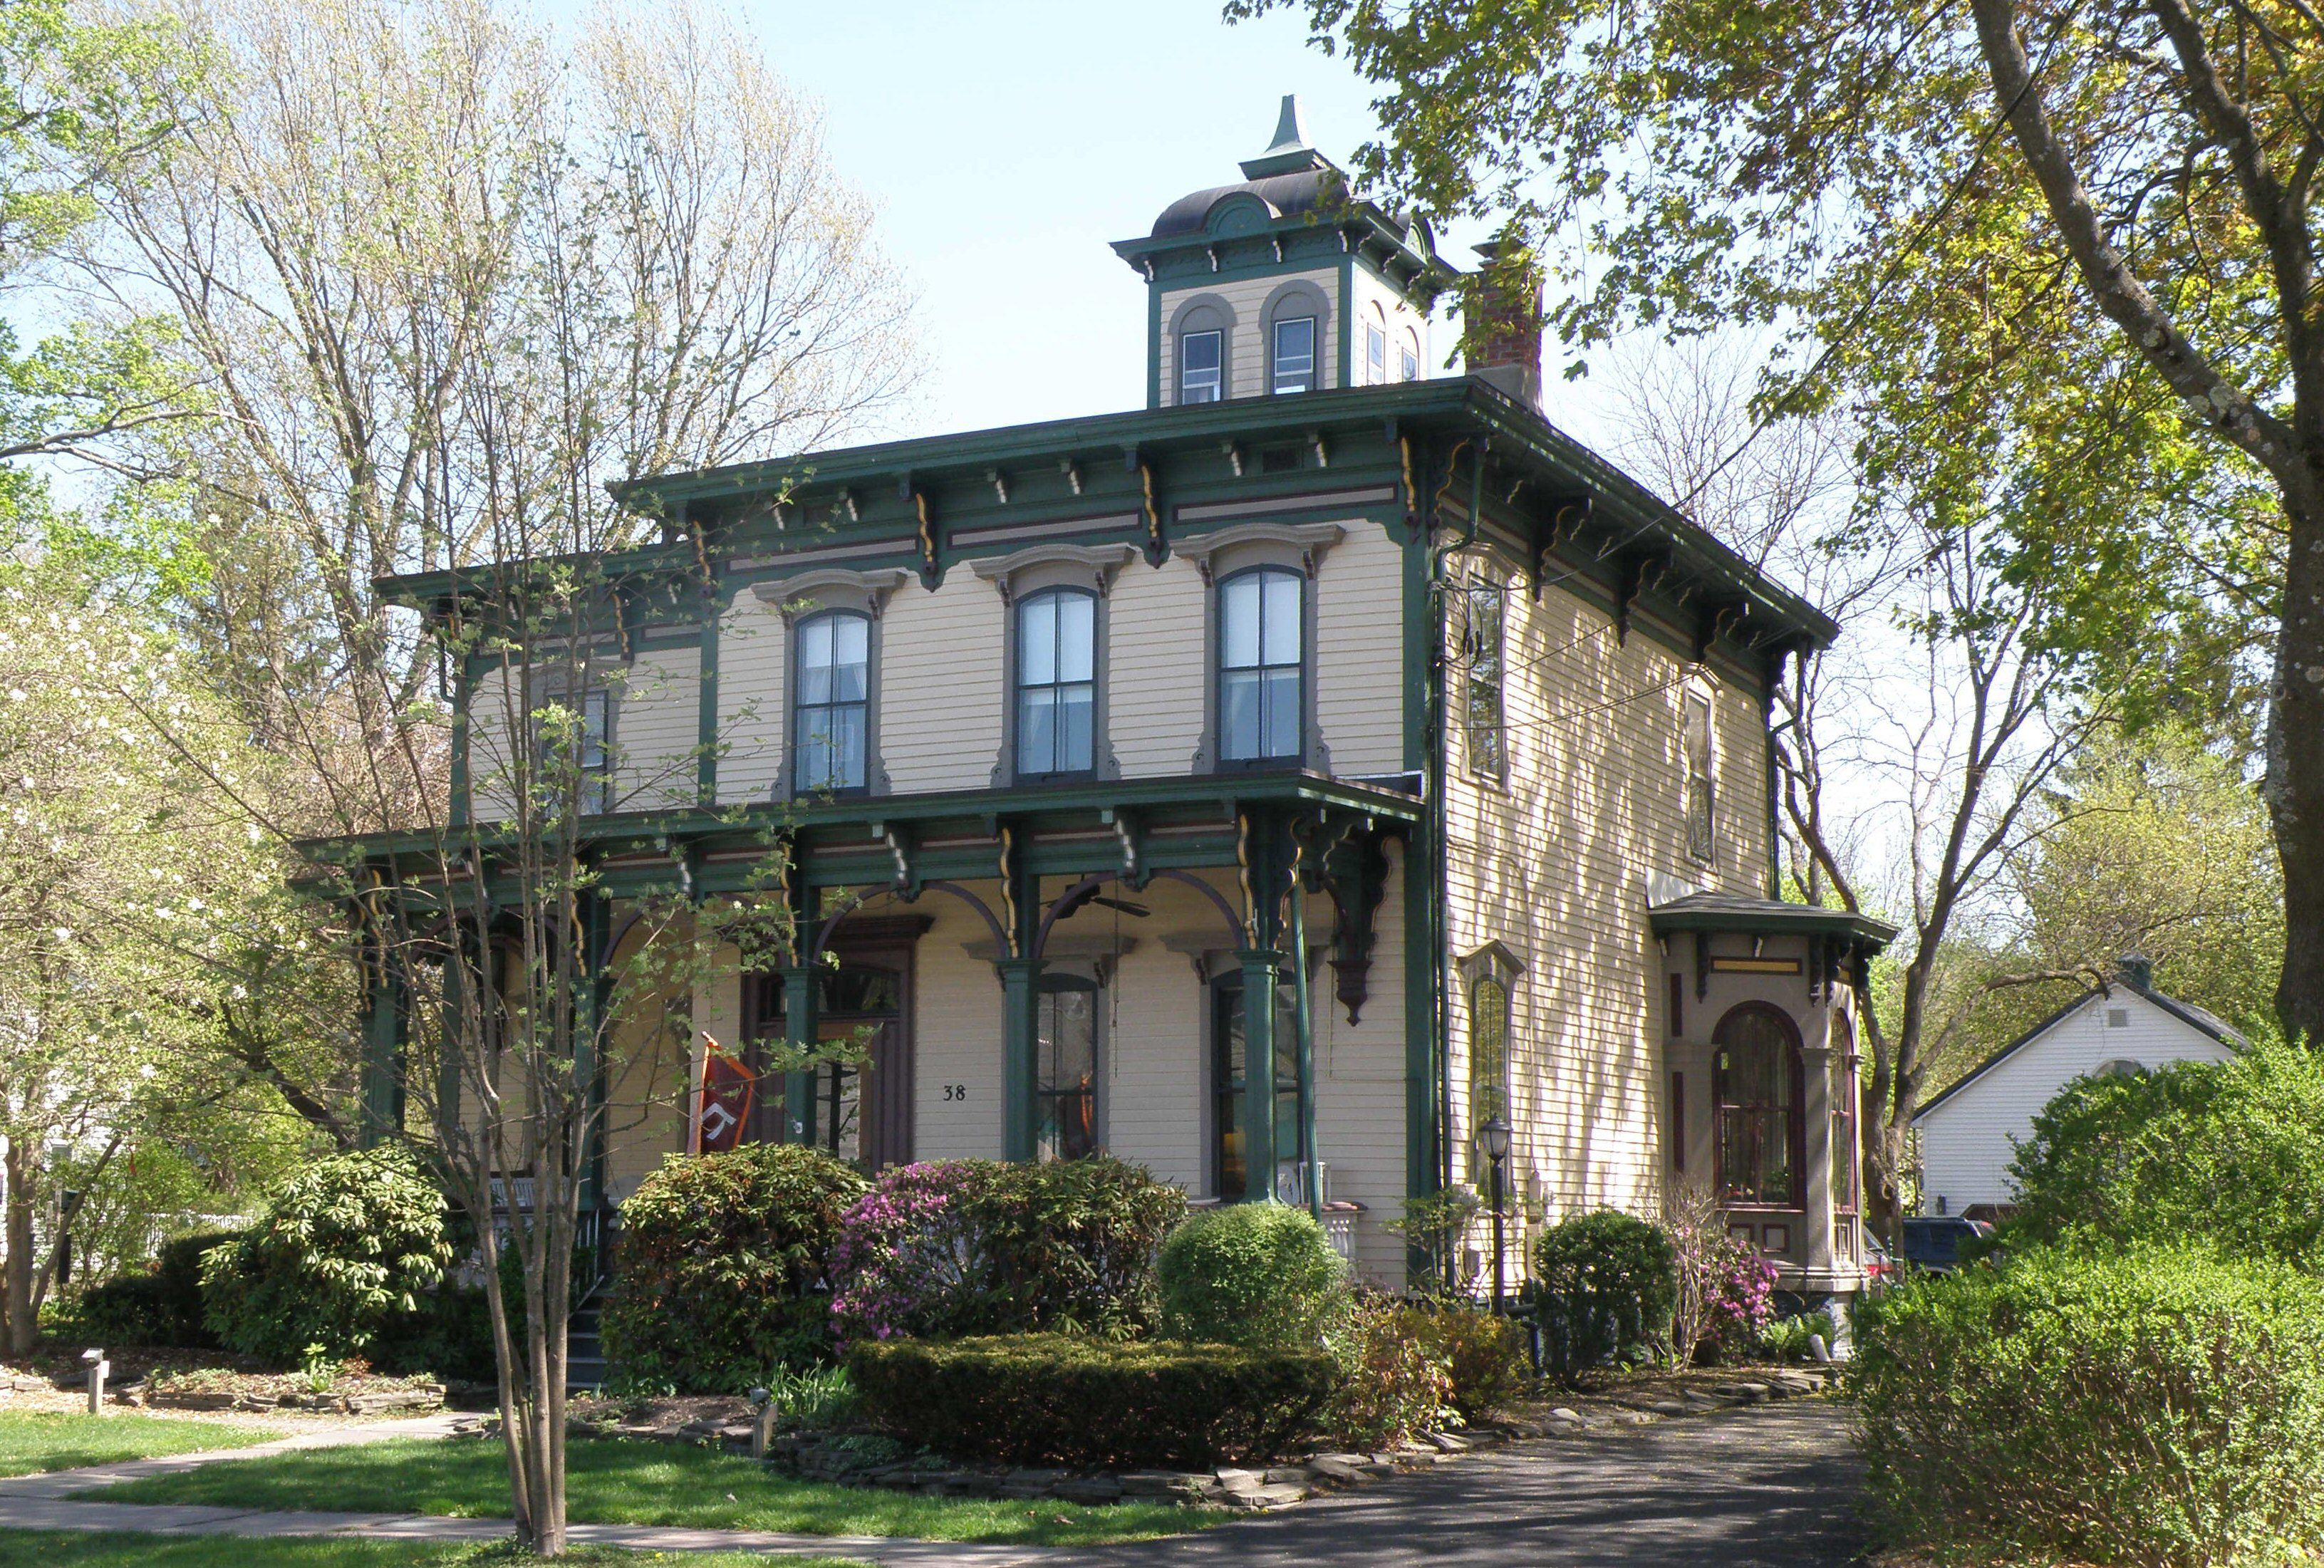 Italianate style house, 2 stories, yellowish siding with green trim and maroon highlights, a square cupola on a flat roof, brackets within the roof overhands and front porch